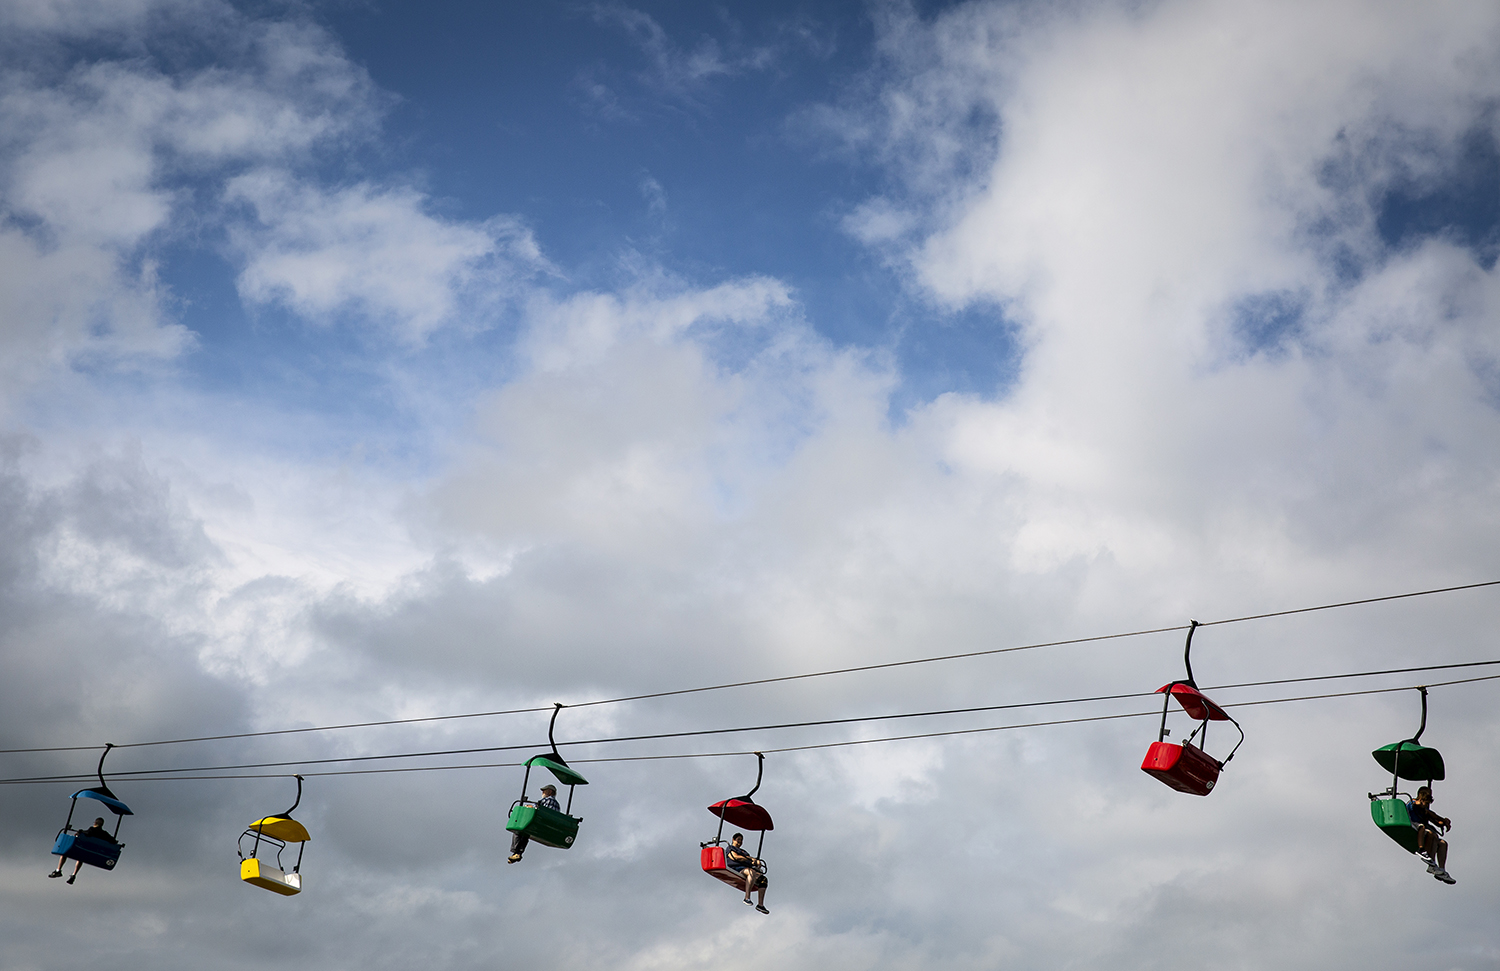 Chairs on the Sky Glide float above the Illinois State Fairgrounds Wednesday, Aug. 15, 2018 during the Illinois State Fair in Springfield, Ill. [Rich Saal/The State Journal-Register]